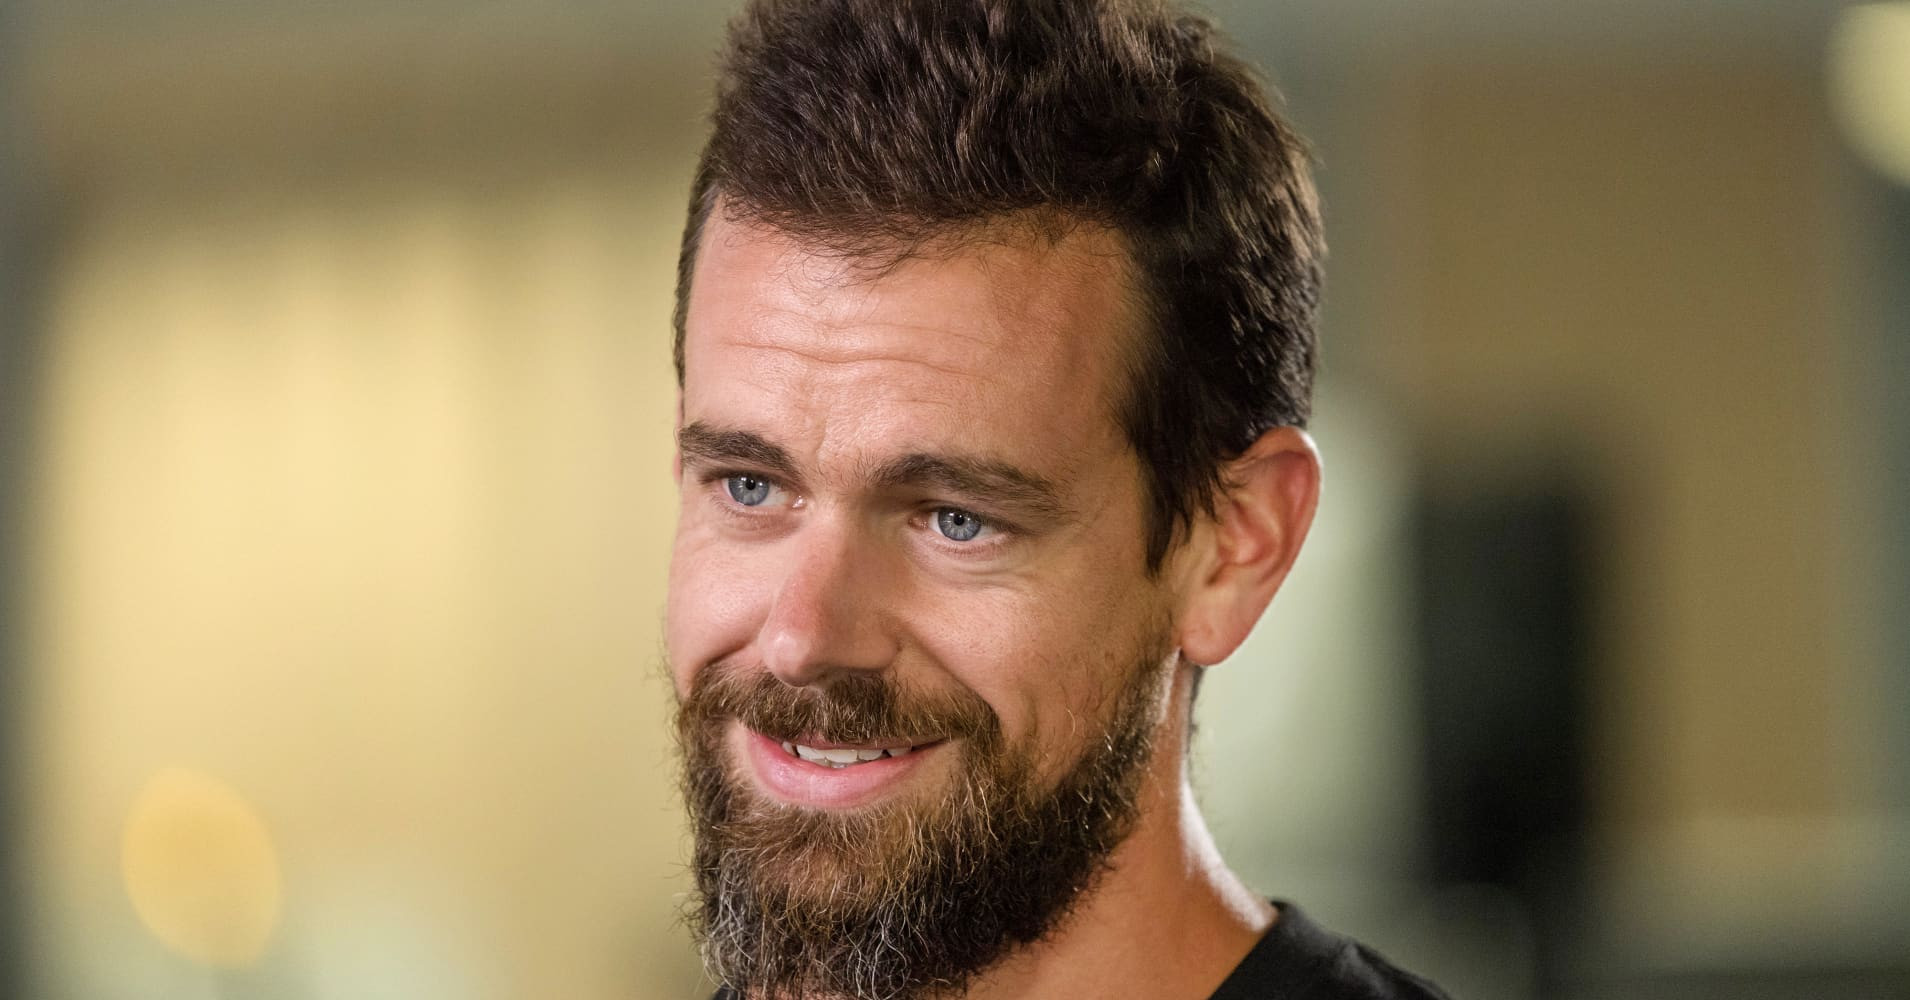 Why Twitter CEO Jack Dorsey practiced this 'extremely painful' ancient meditation technique for his birthday